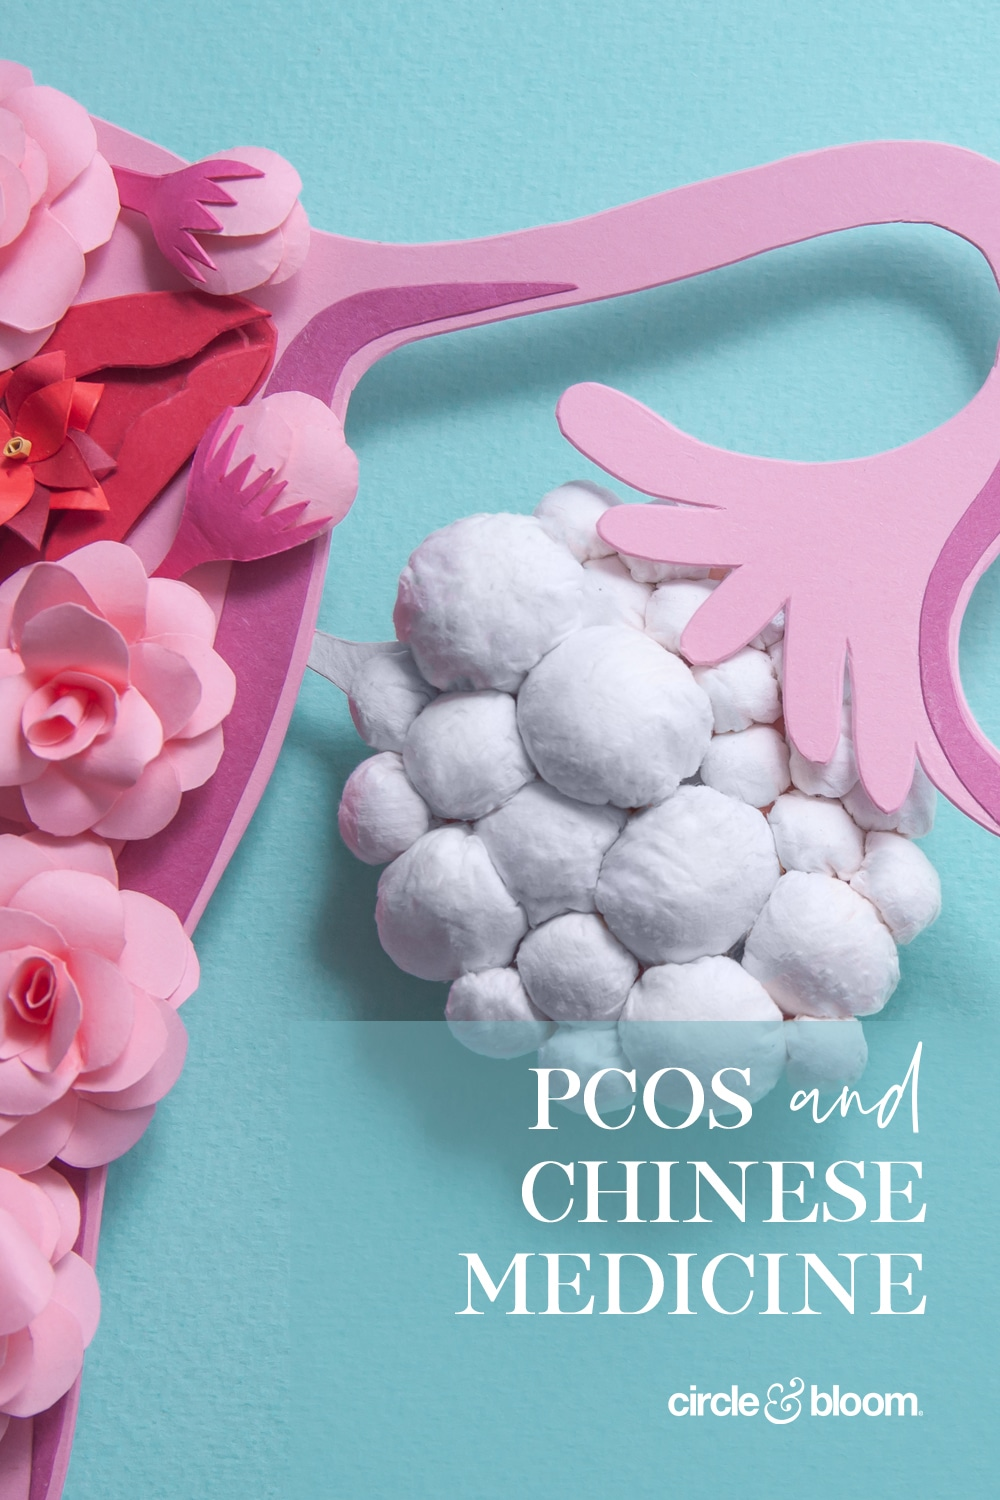 The Use of Chinese Medicine to Treat PCOS